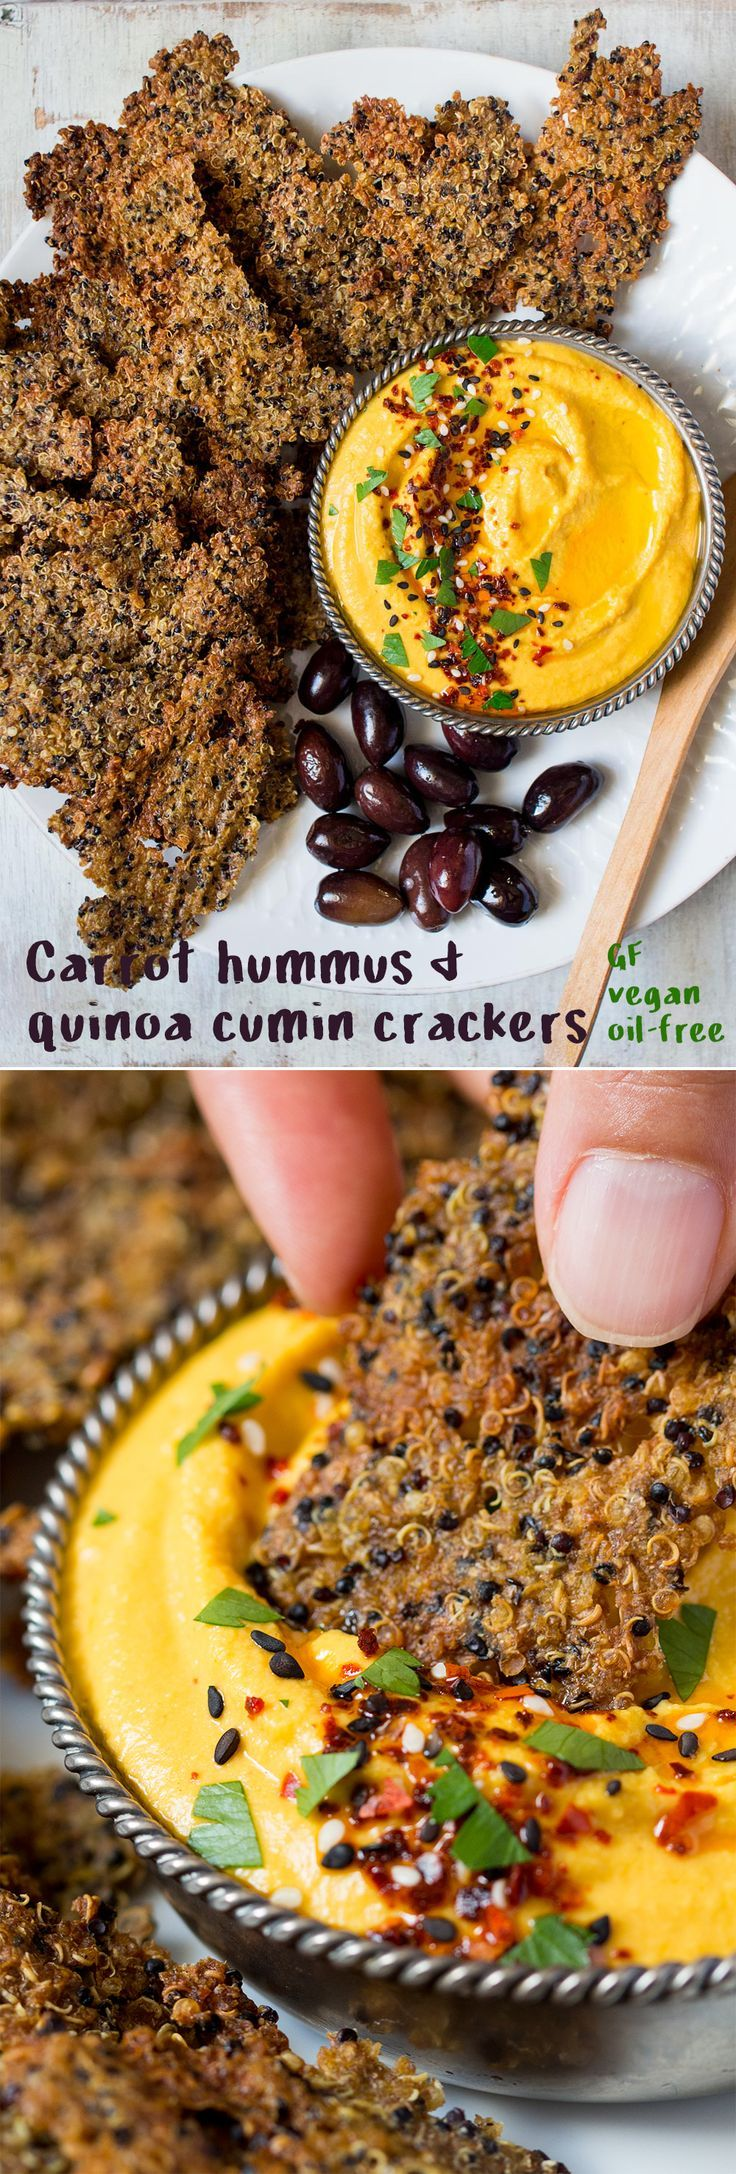 Carrot hummus with cumin crackers